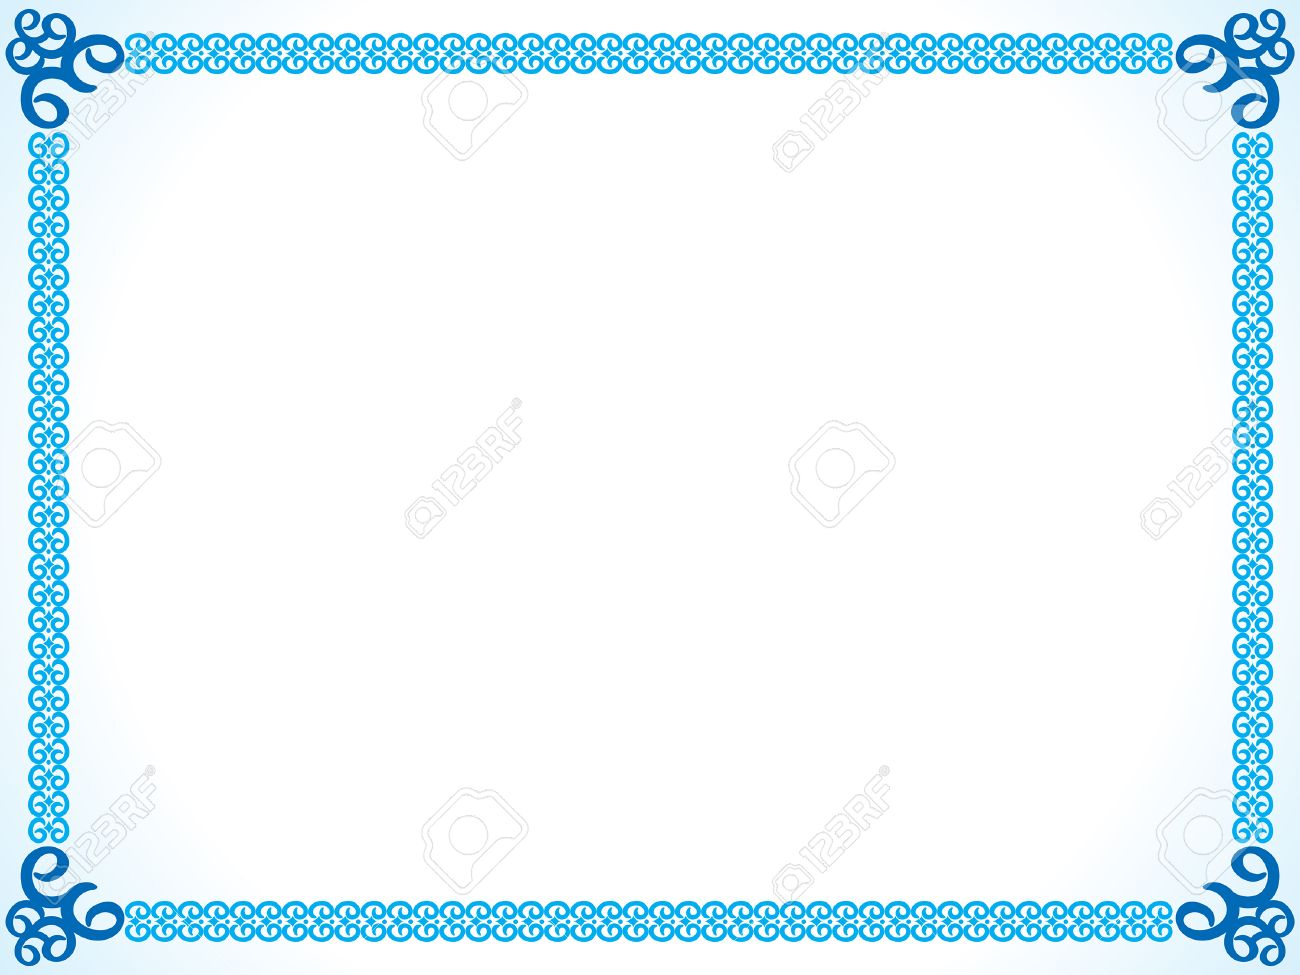 Abstract Artistic Blue Border Vector Ill 807709 Png